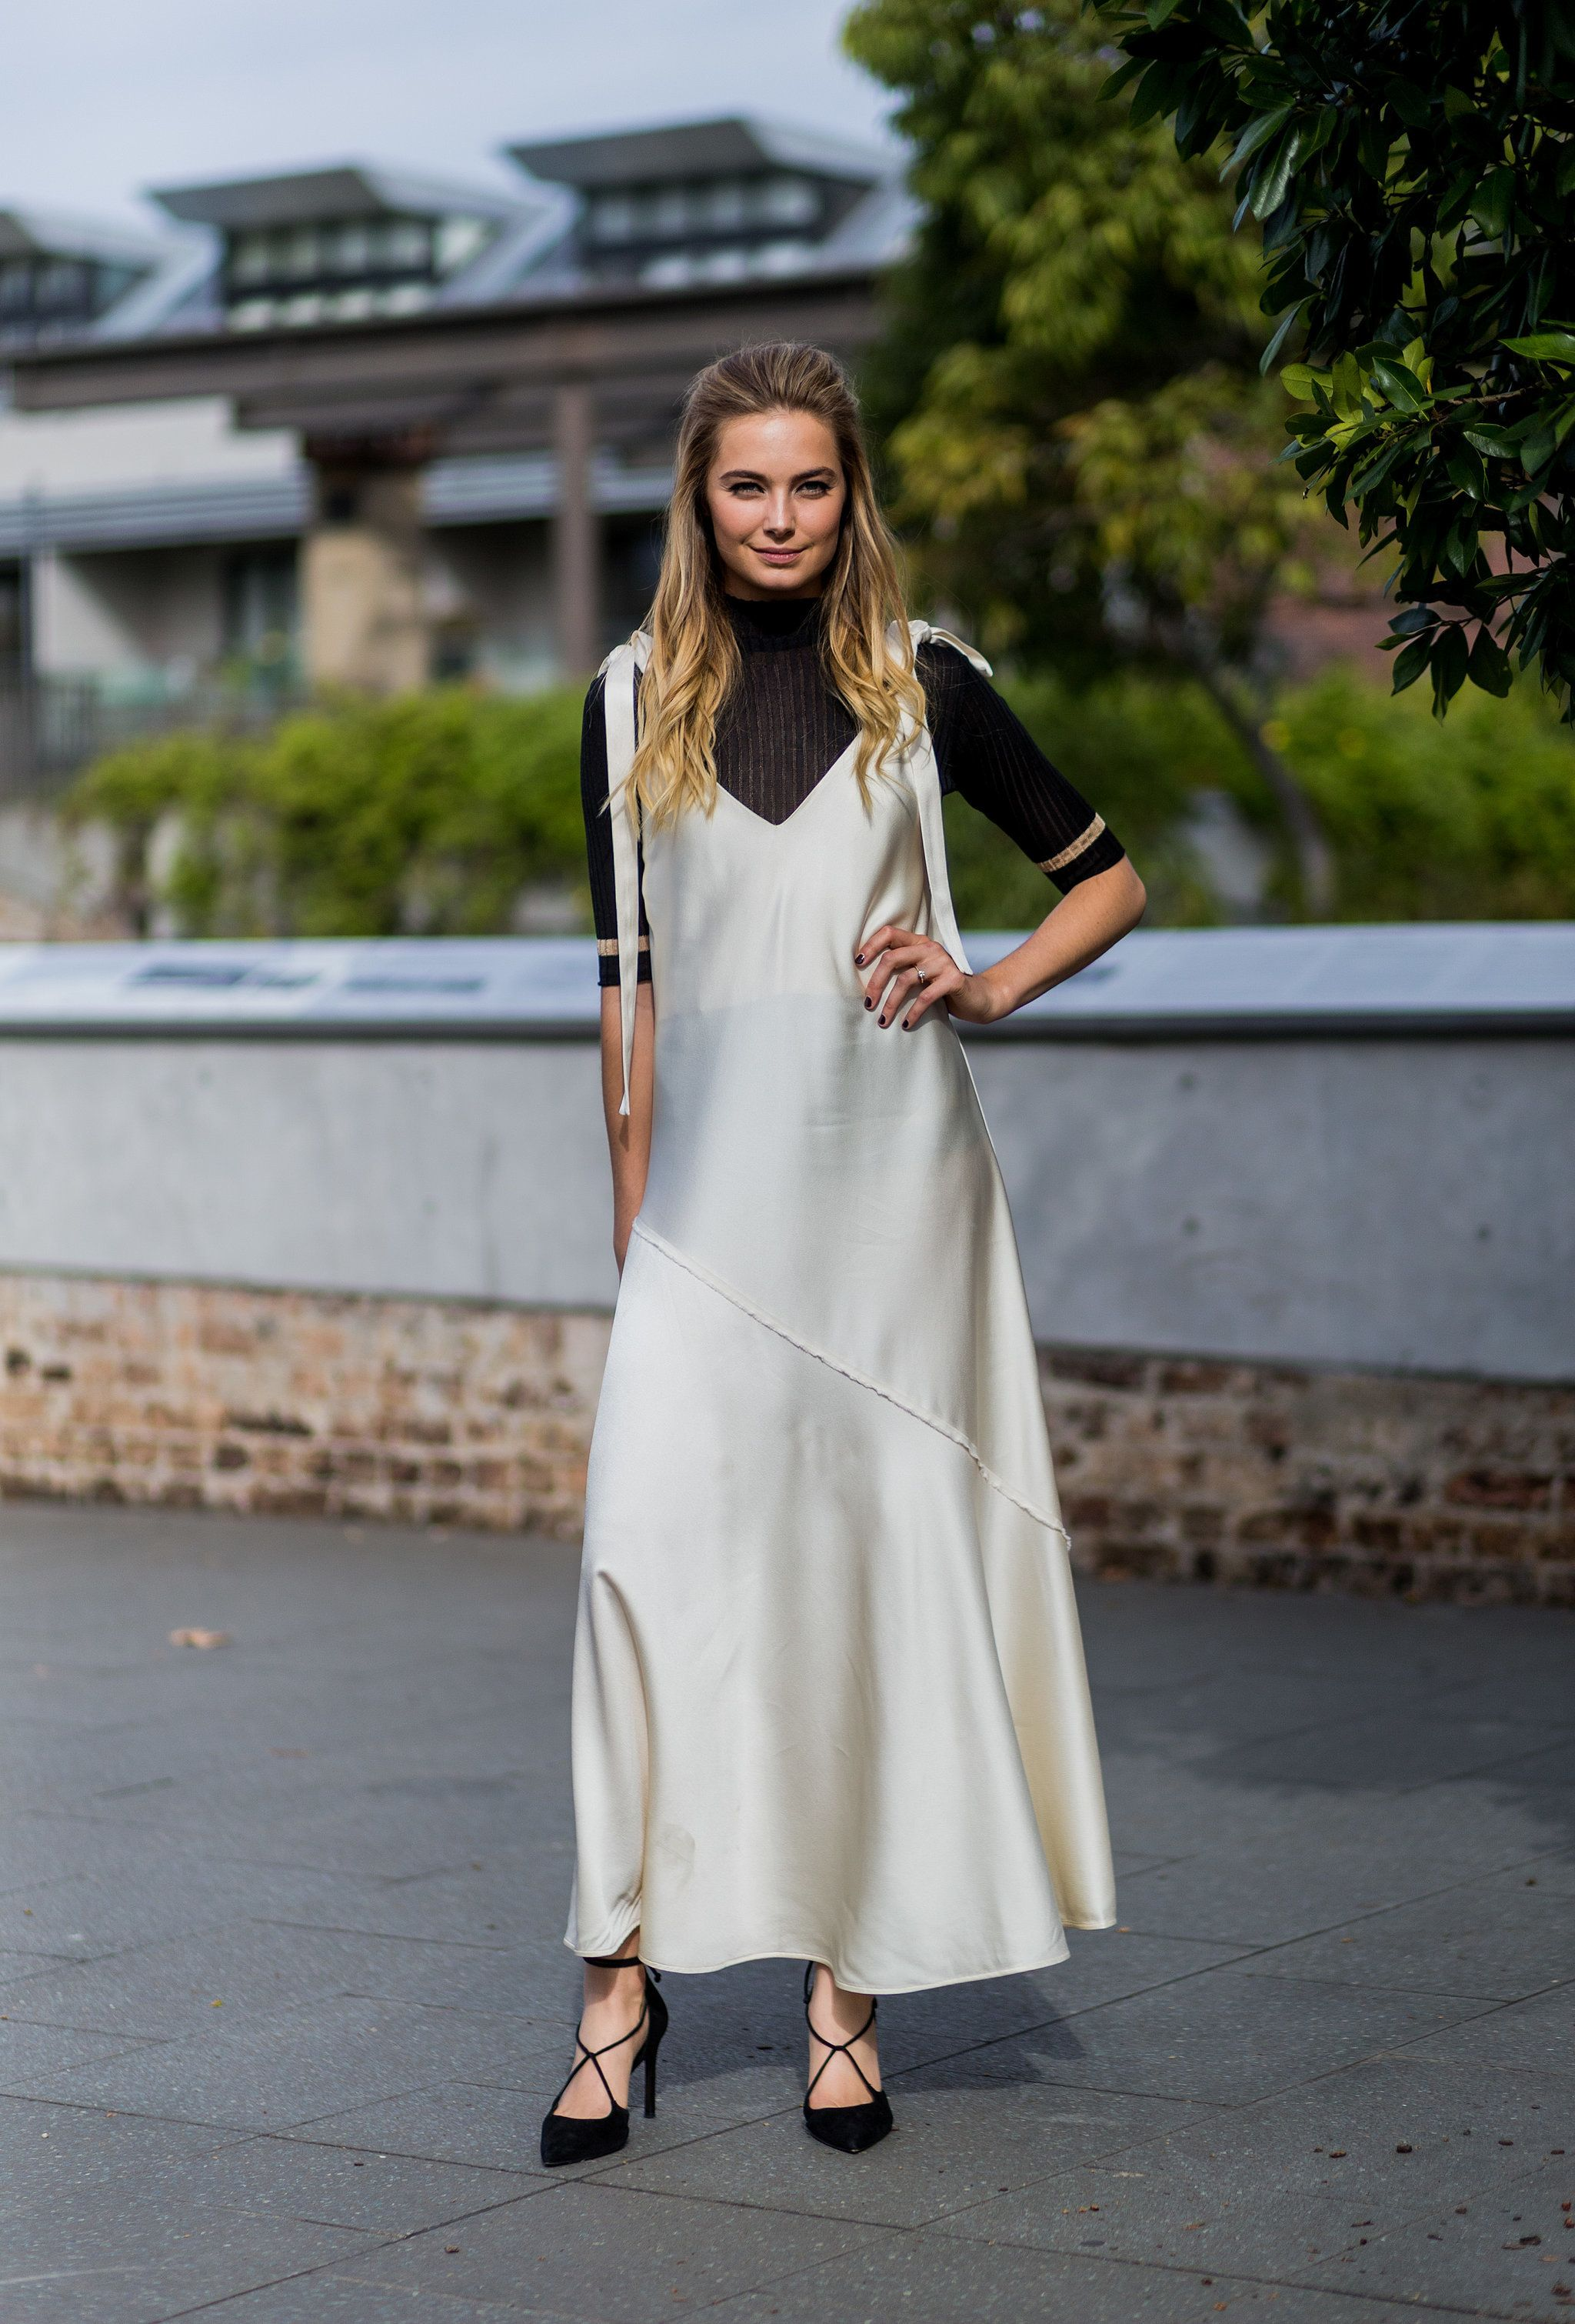 A Silk Slip Is Street Style Ready With Fancy Shoes and a ...